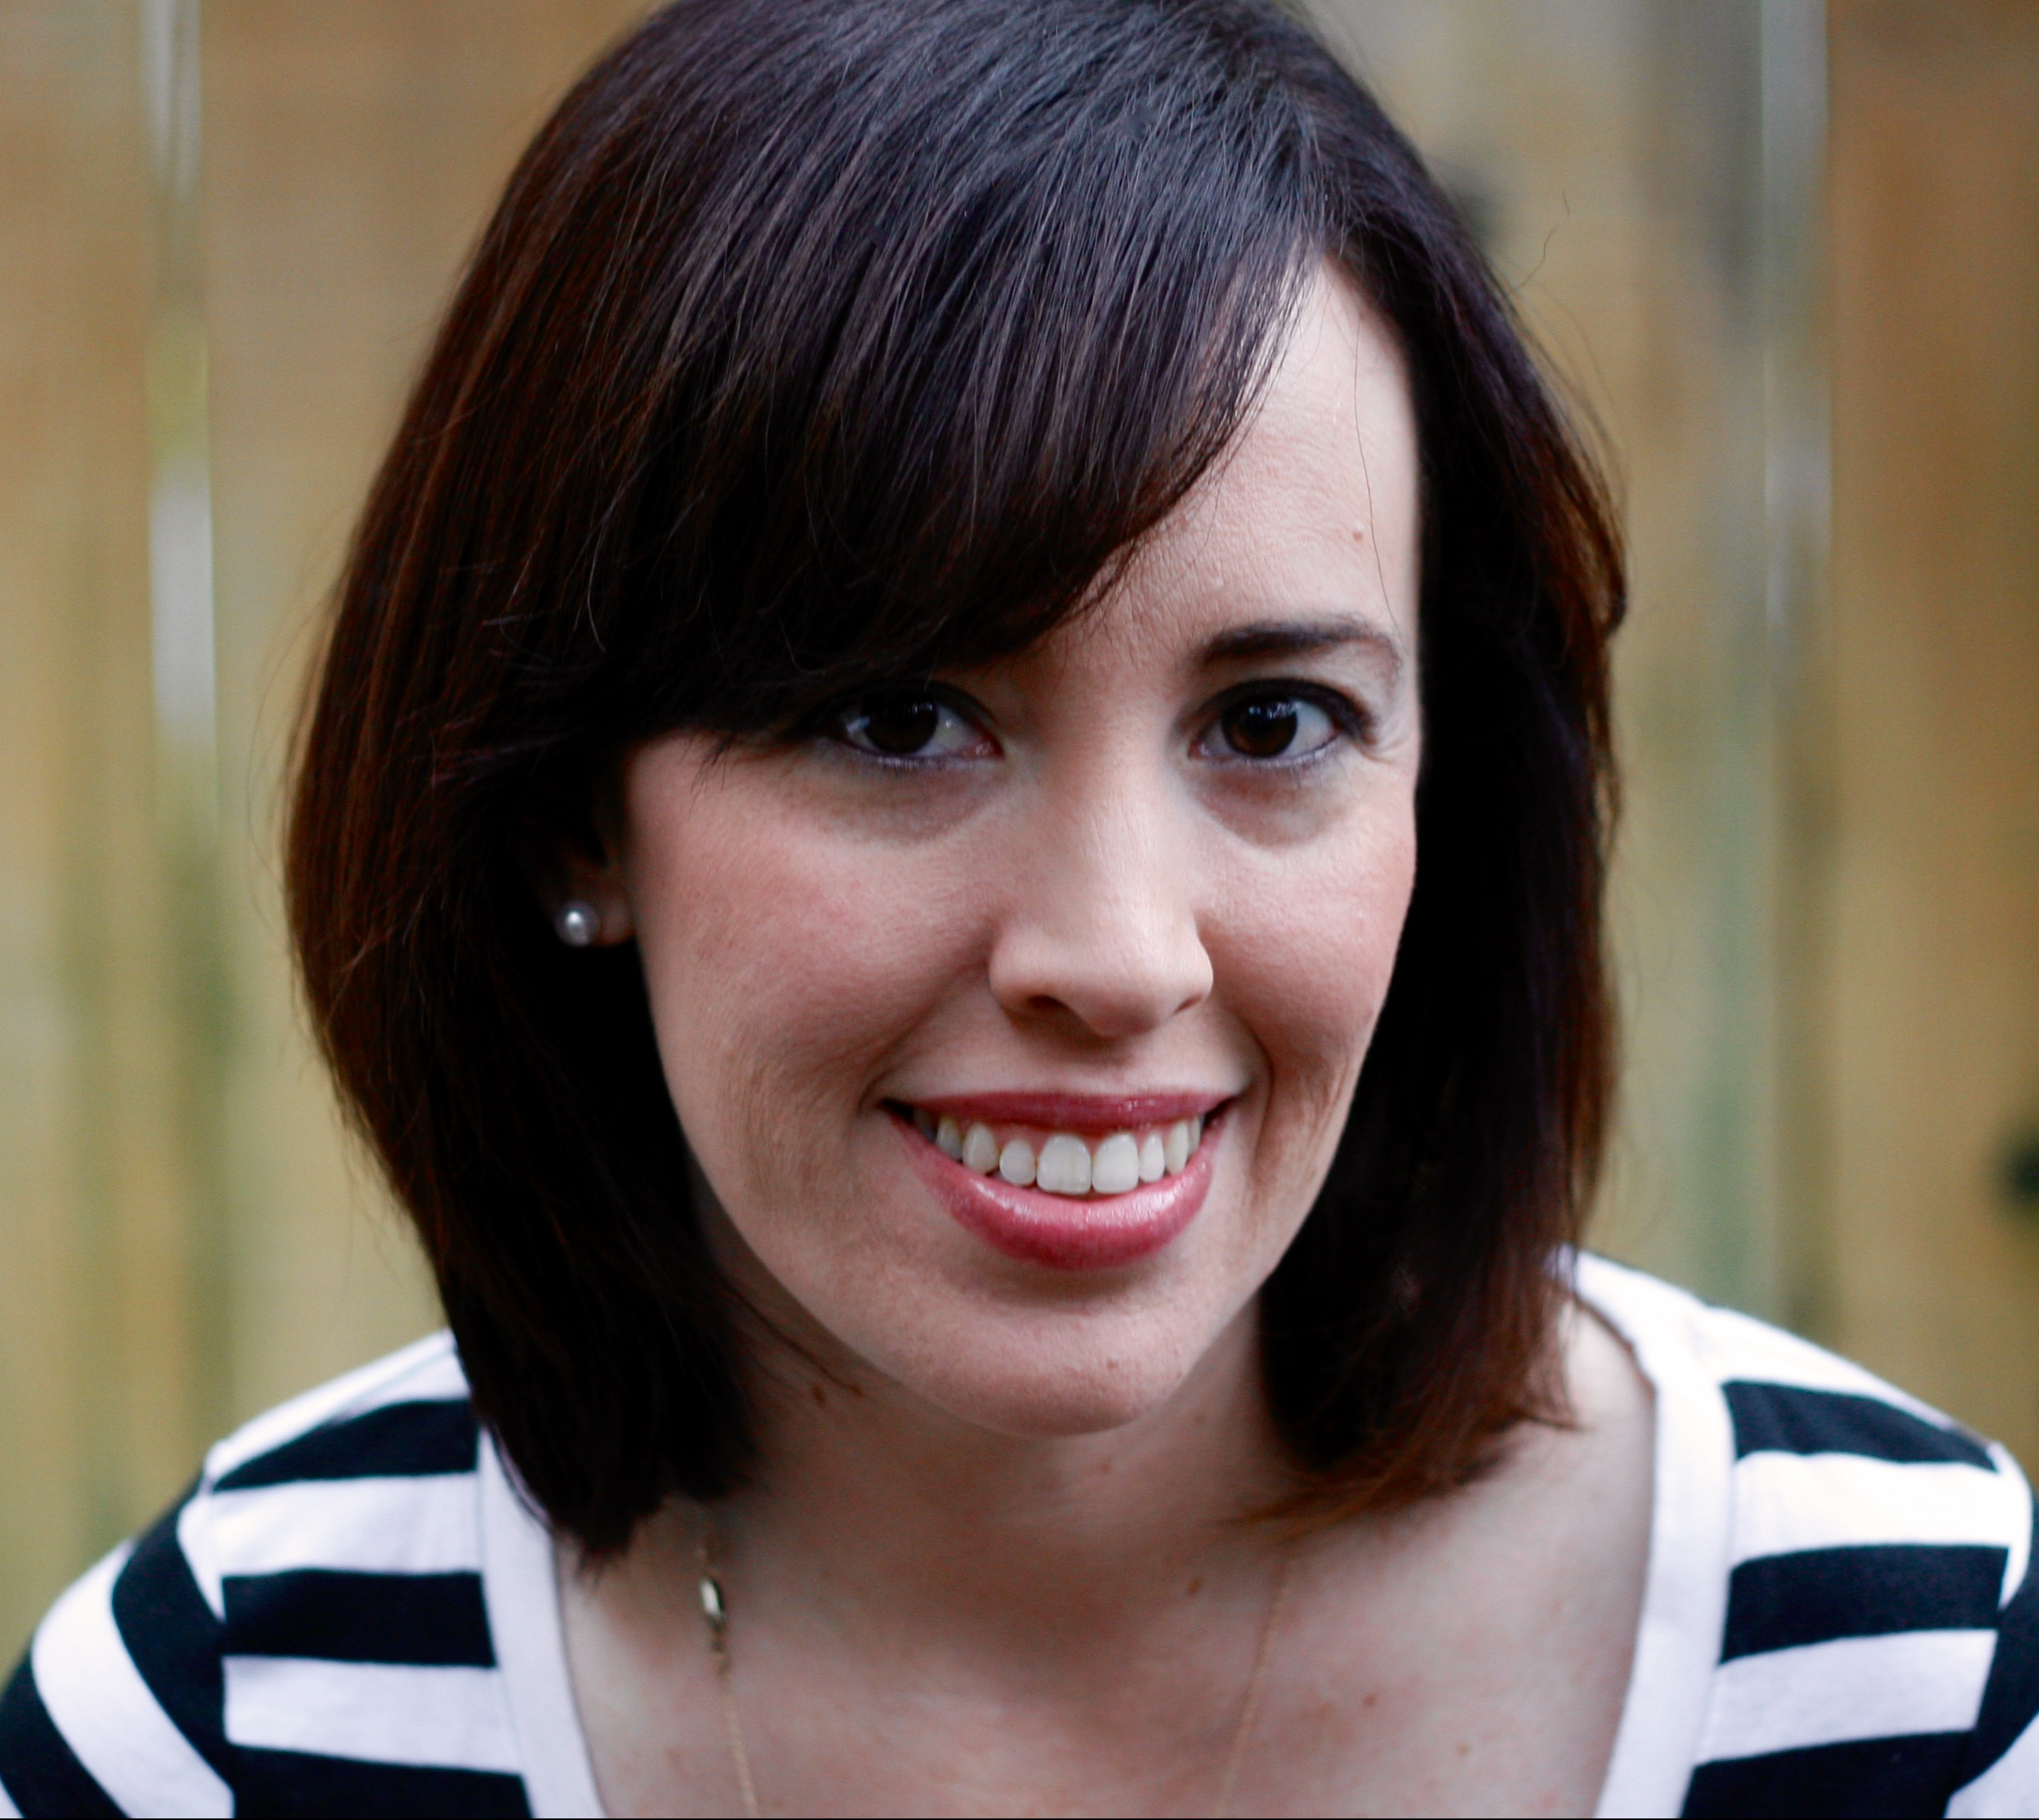 Headshot of author Jennifer Torres, wearing a black and white striped shirt and sitting in front of wood fence.